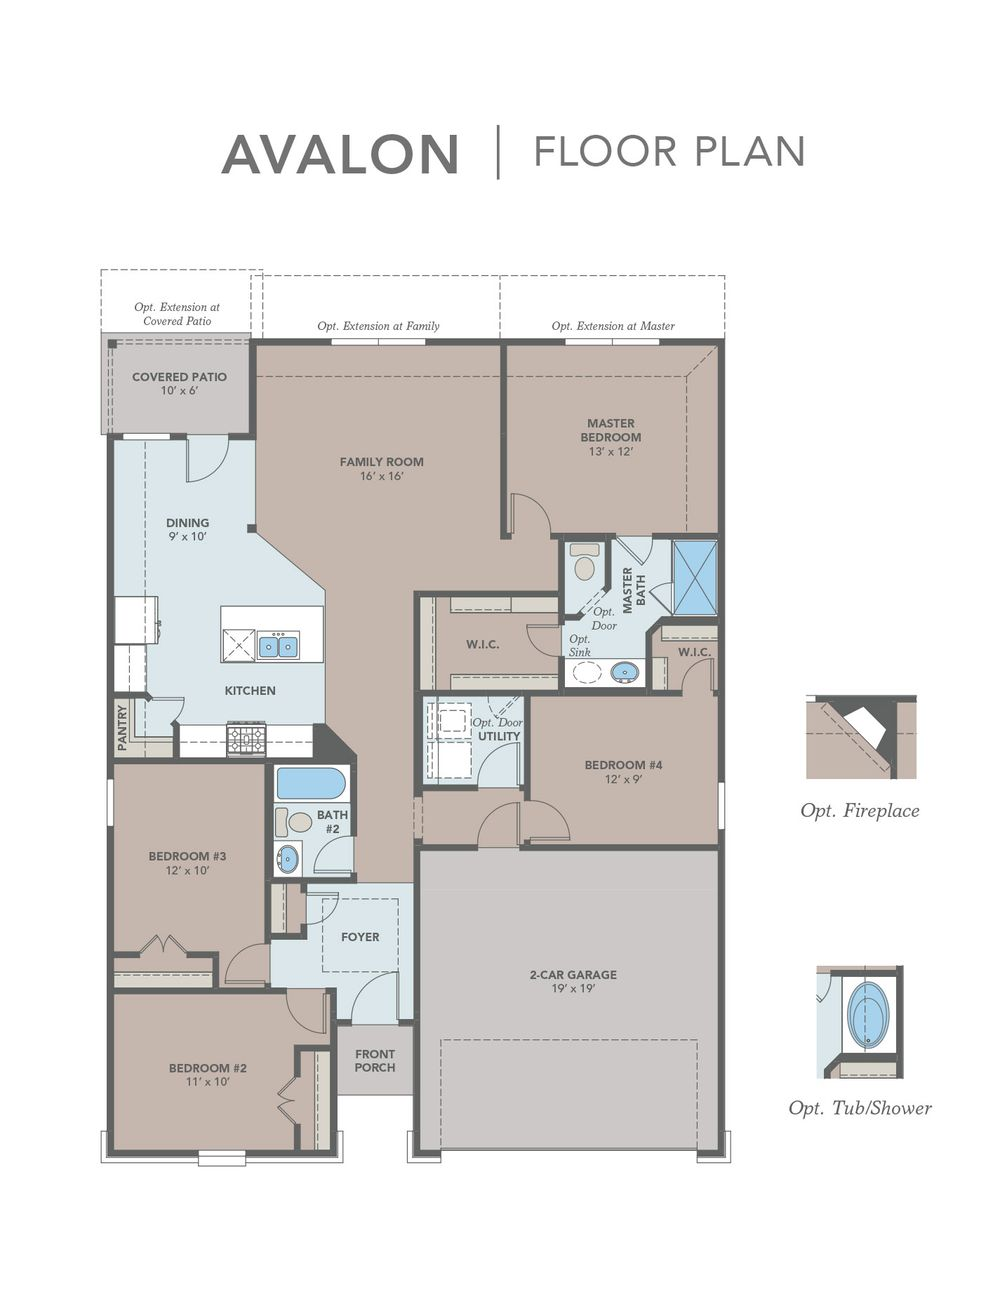 Avalon Home Plan By Gehan Homes In Clements Ranch